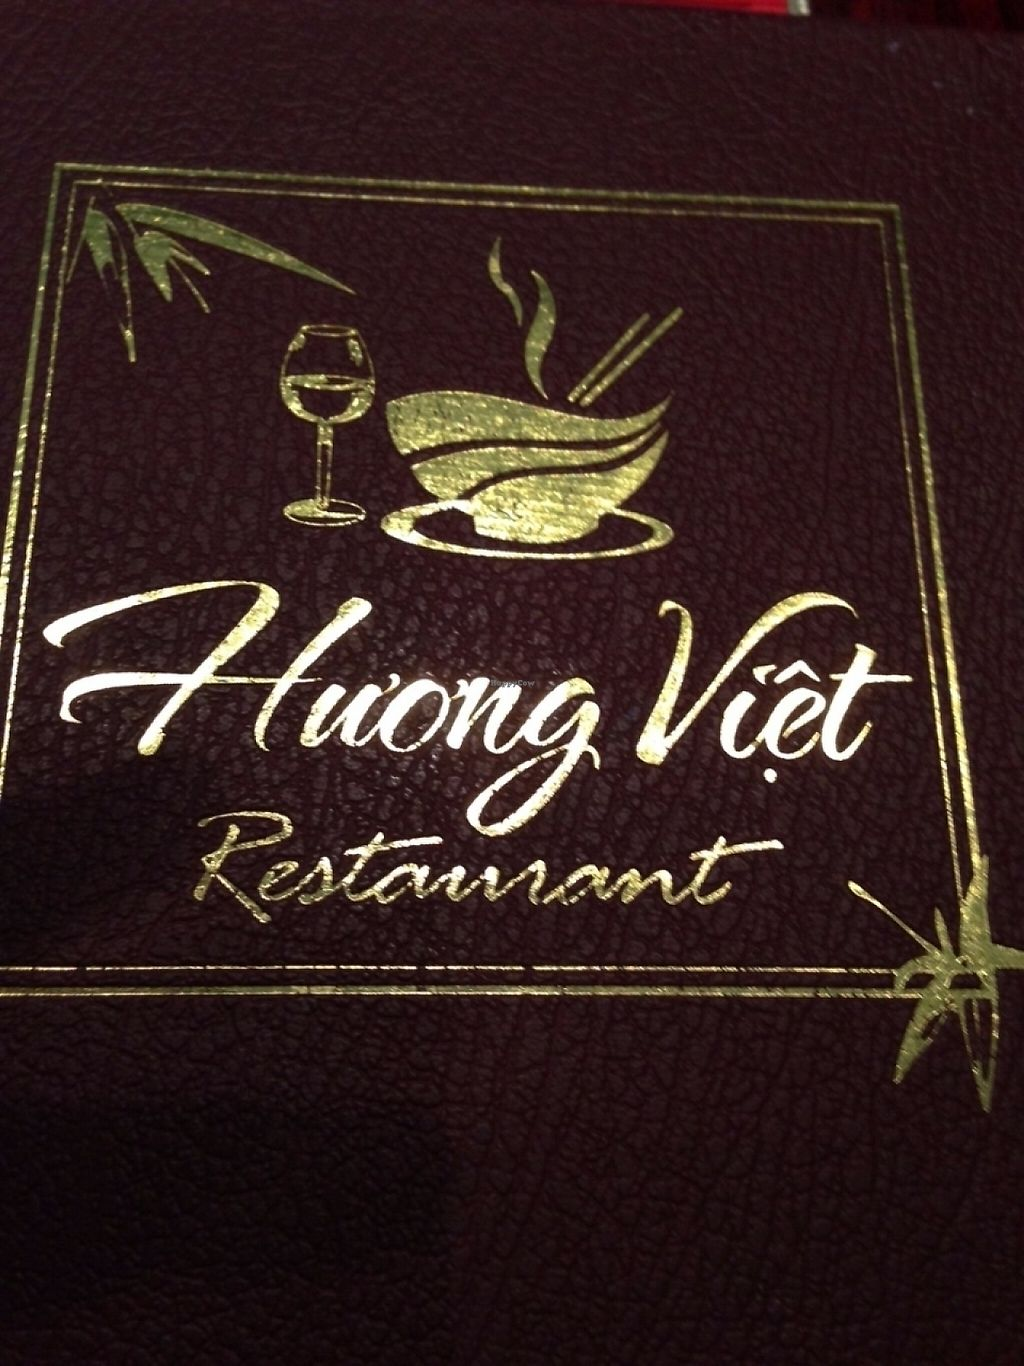 """Photo of Huong Viet  by <a href=""""/members/profile/CarlaGolden"""">CarlaGolden</a> <br/>Great menu with photos! <br/> June 7, 2016  - <a href='/contact/abuse/image/74431/224032'>Report</a>"""